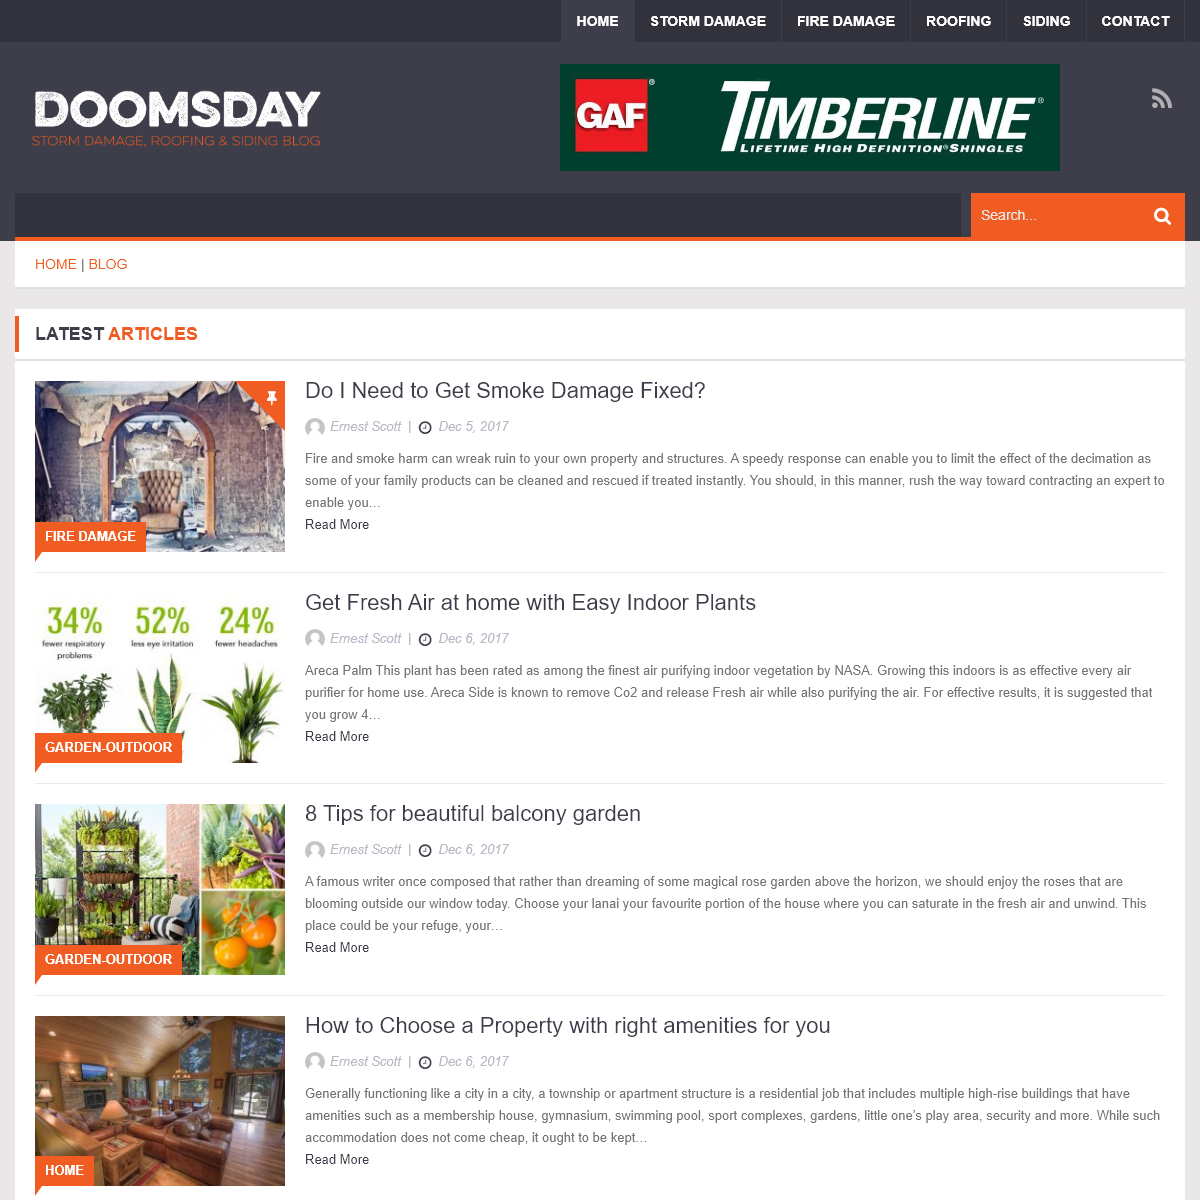 Doomsday – Storm Damage, Roofing, and Siding Blog